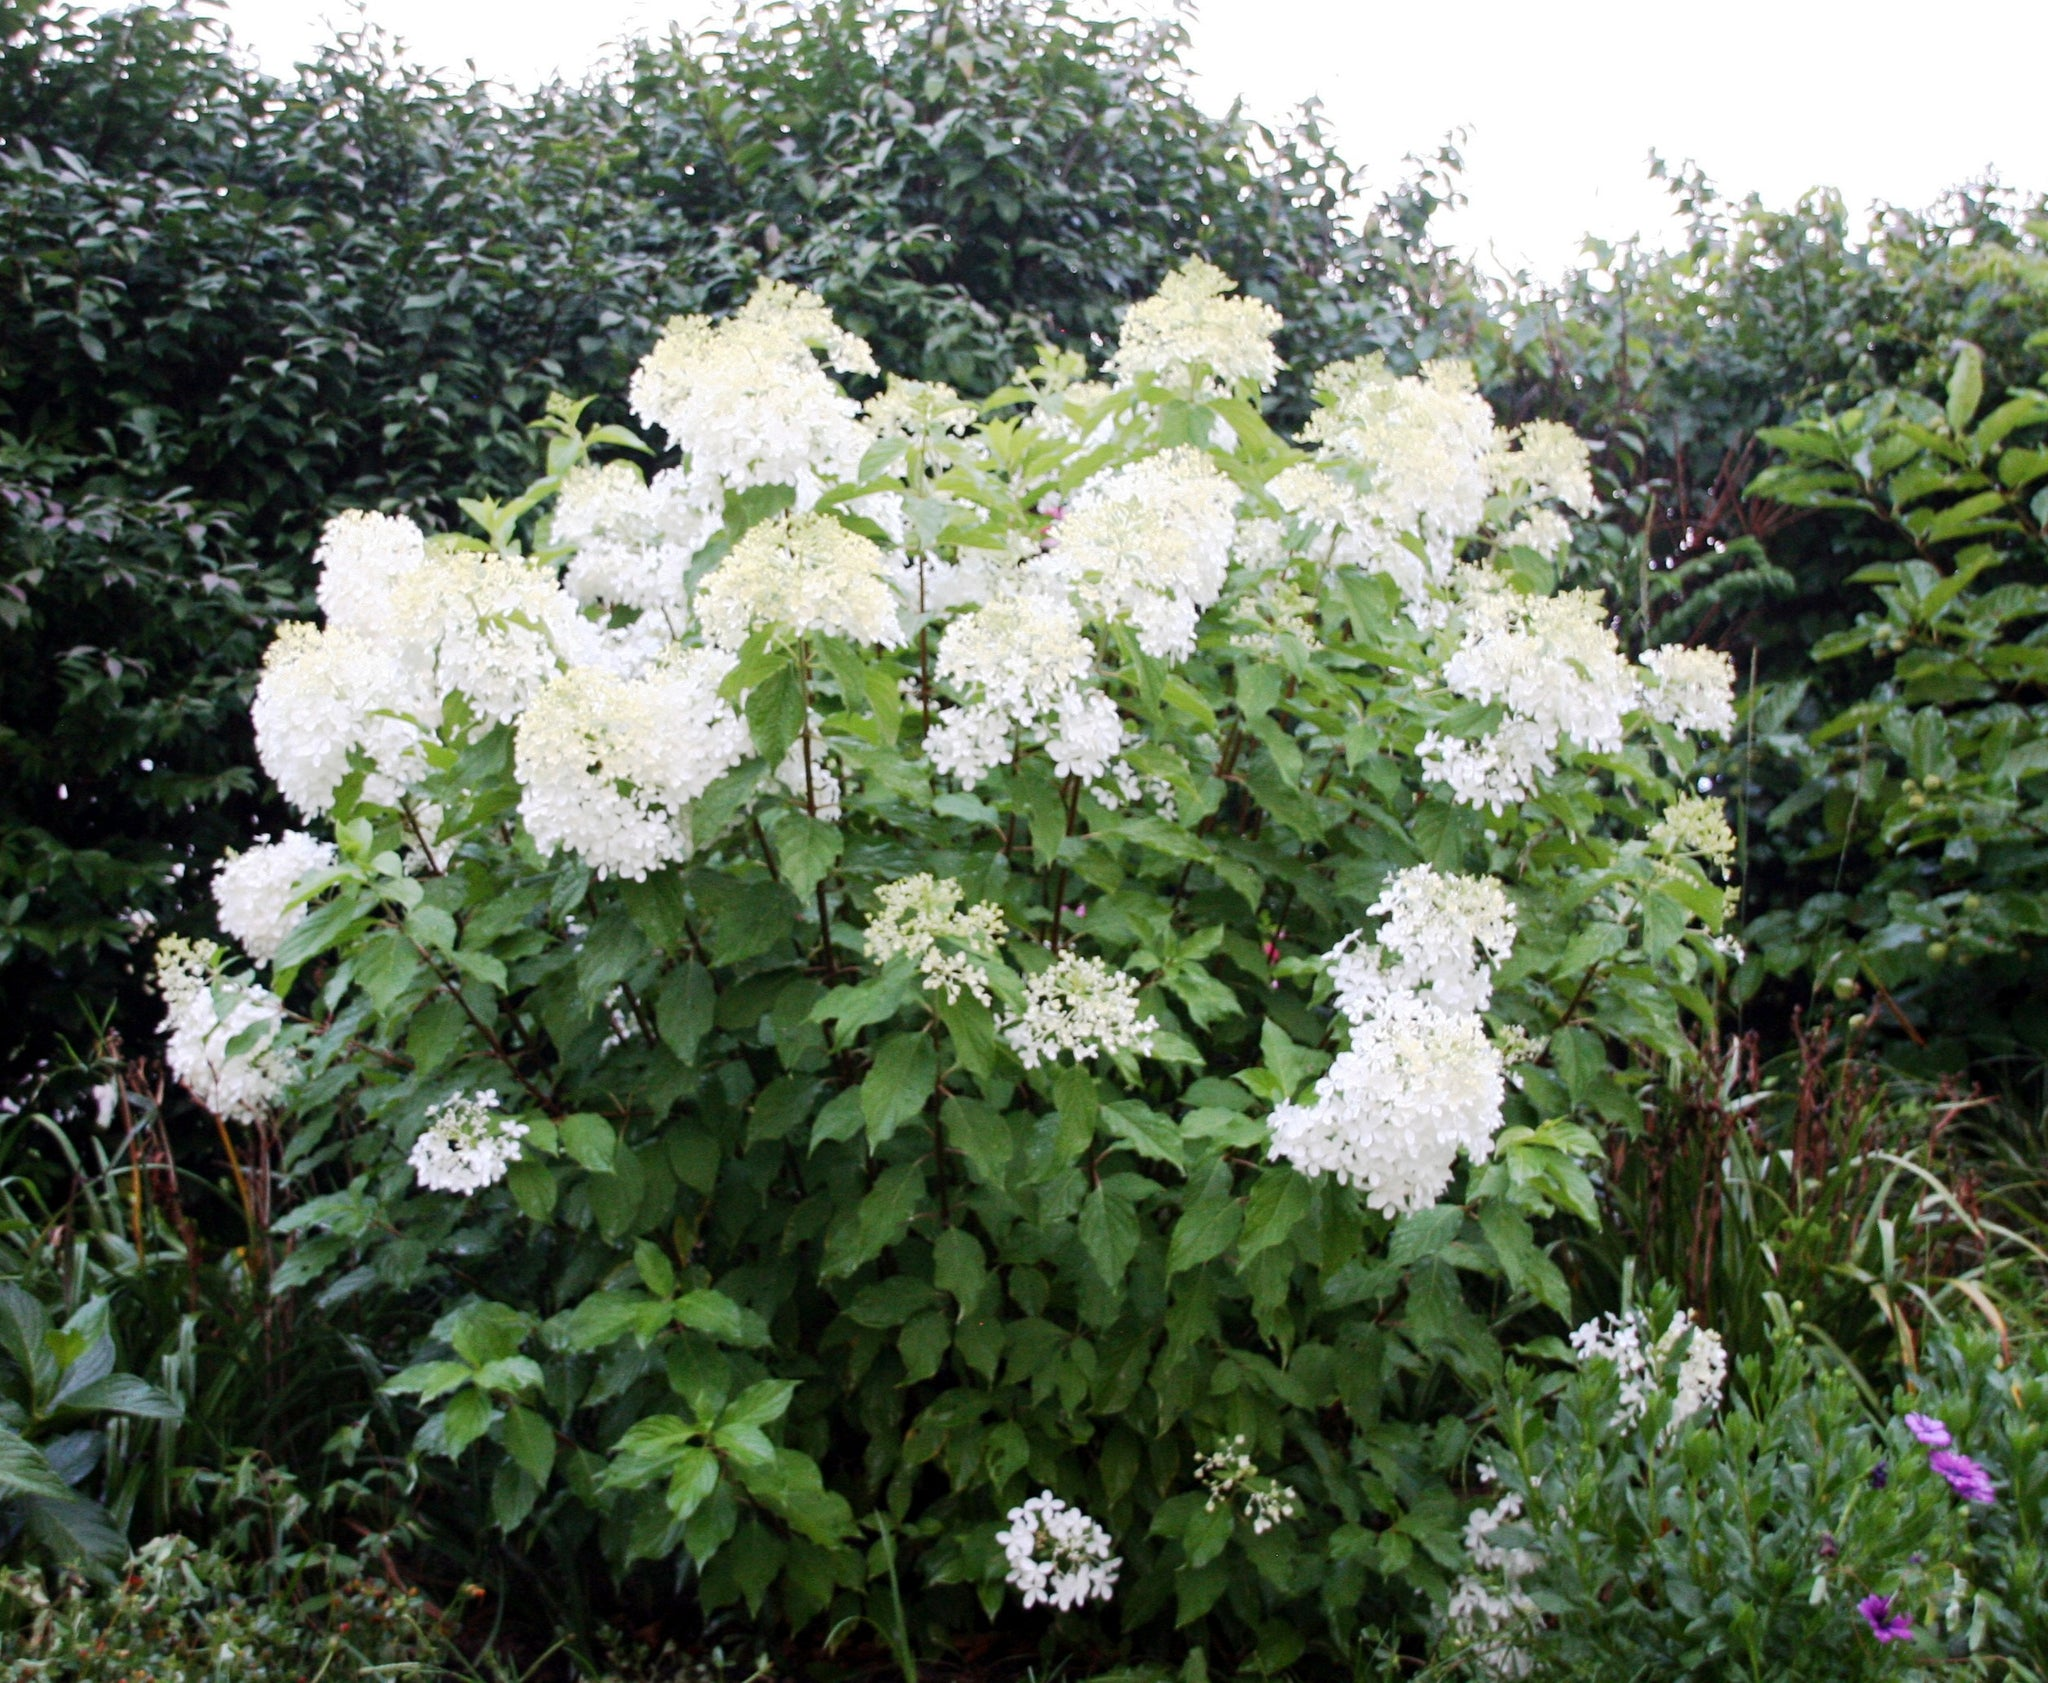 PHANTOM HYDRANGEA , FLOWER CLUSTERS OVER A FOOT,COLD HARDY (-30 TO-40F),TAKE FULL SUN,CAN GROW IN VARIETY OF CLIMATES, LOTS OF HUGE,WHITE FLOWERS,